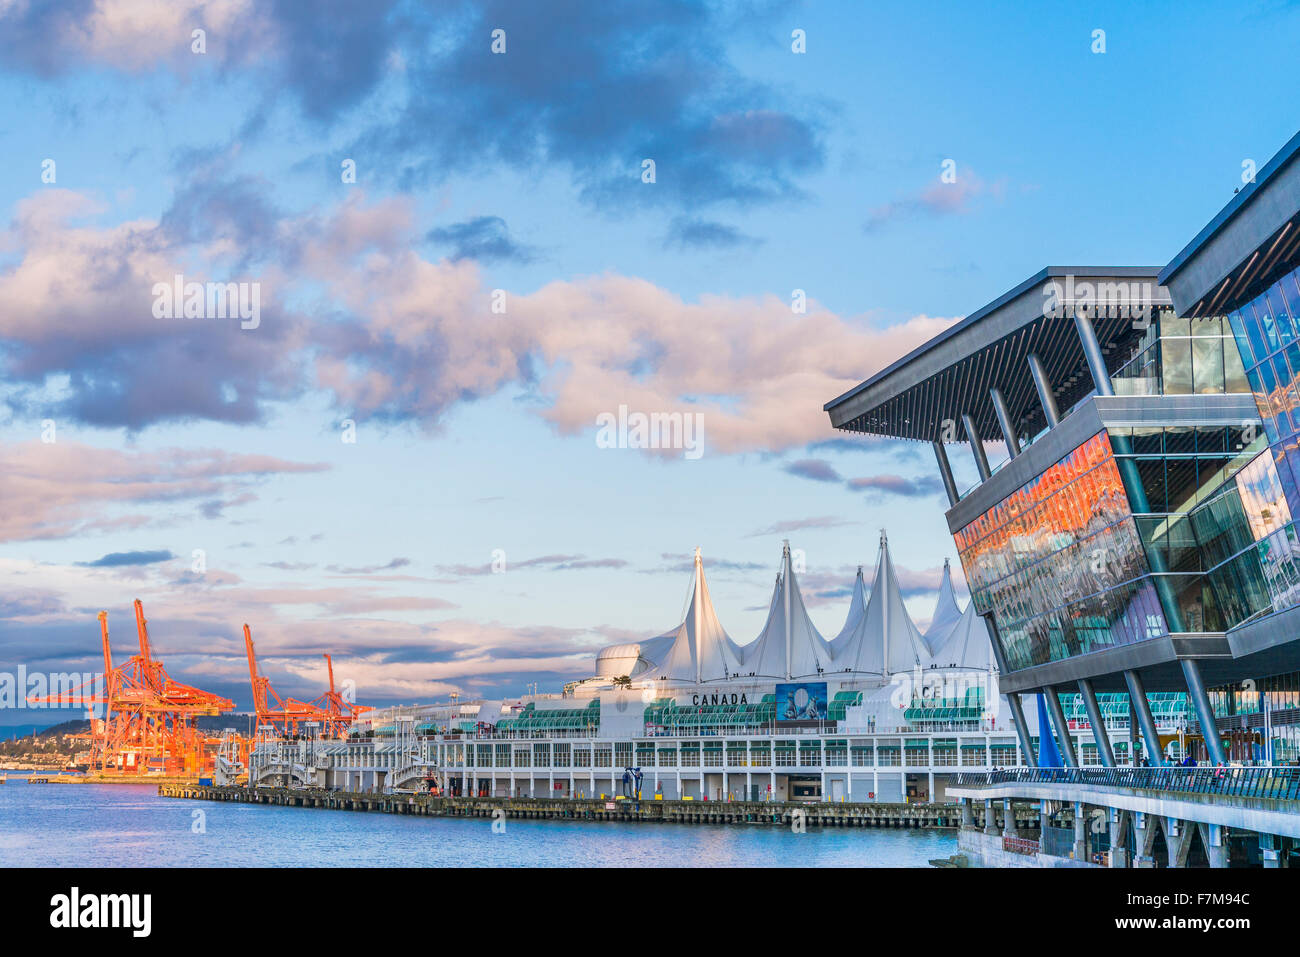 Vancouver Convention Centres, Vancouver, British Columbia, Canada - Stock Image